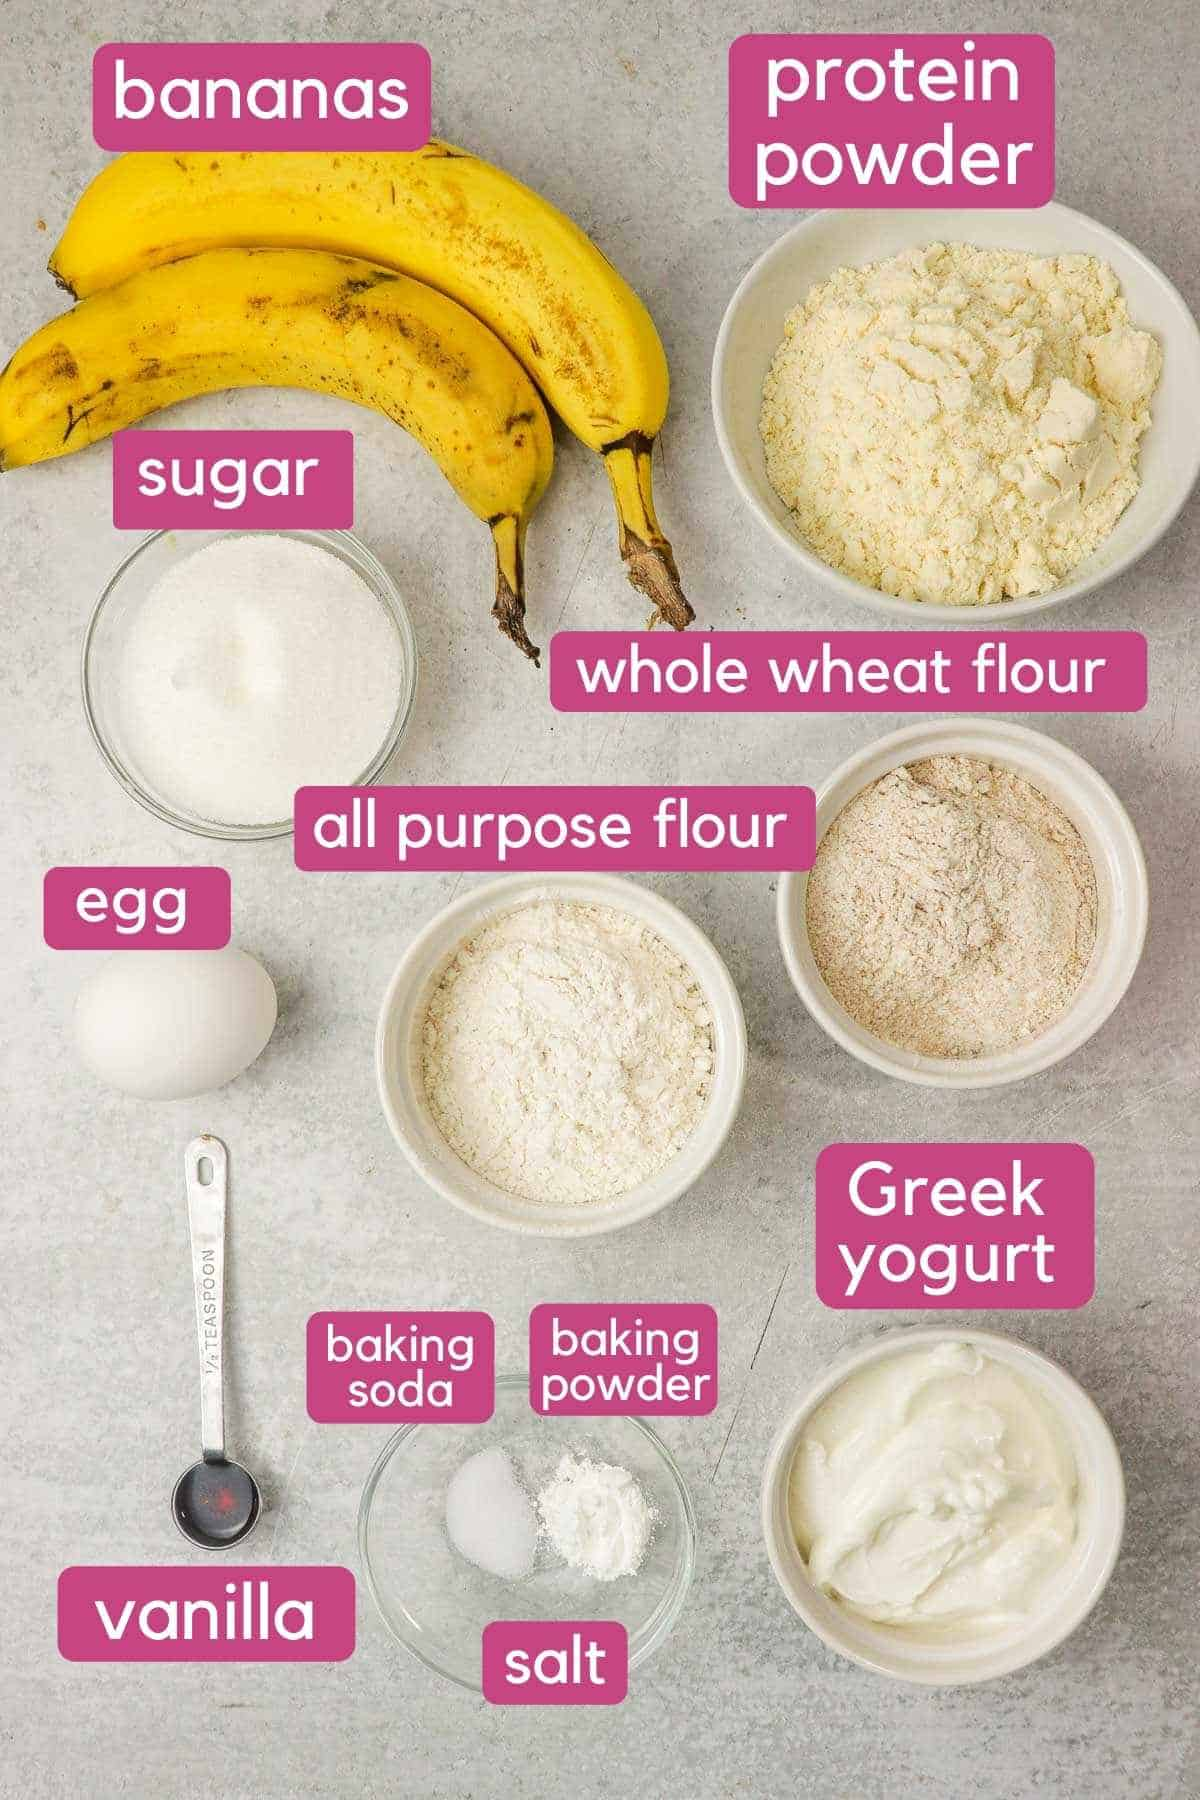 Banana protein muffin ingredients